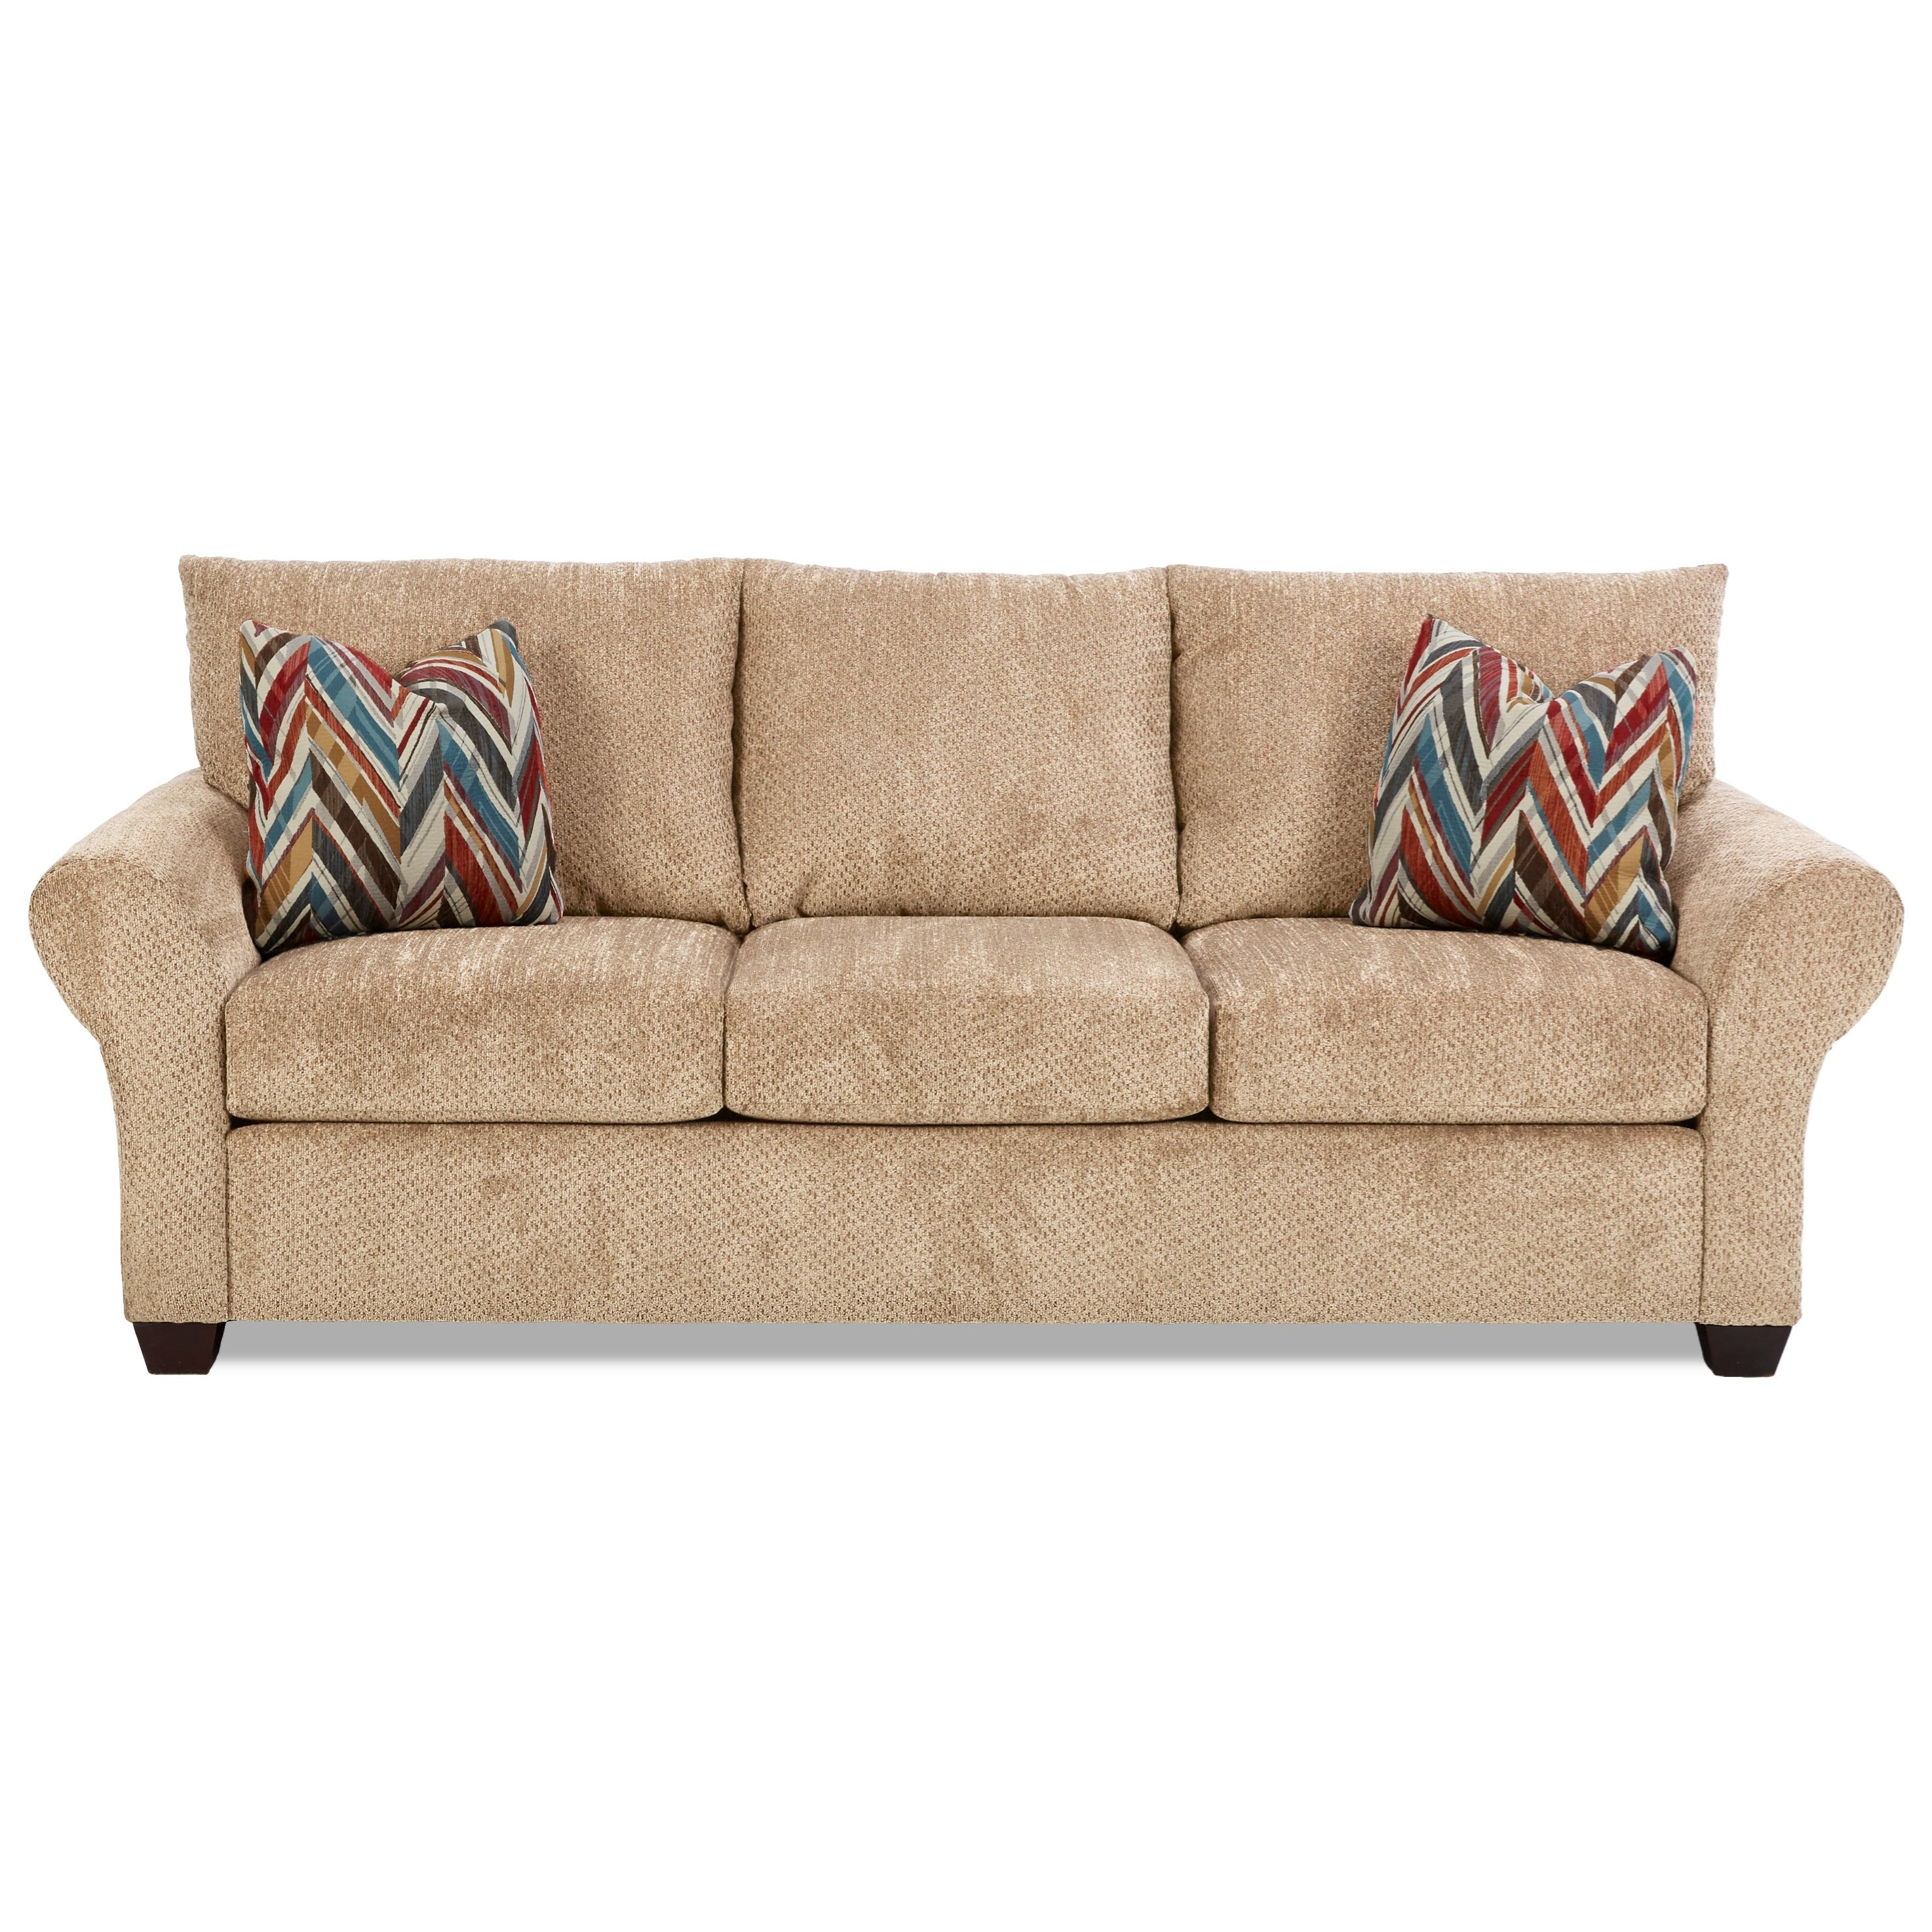 Klaussner Cedar Creek Sofa - Item Number: K16300 S-Chunky Putty